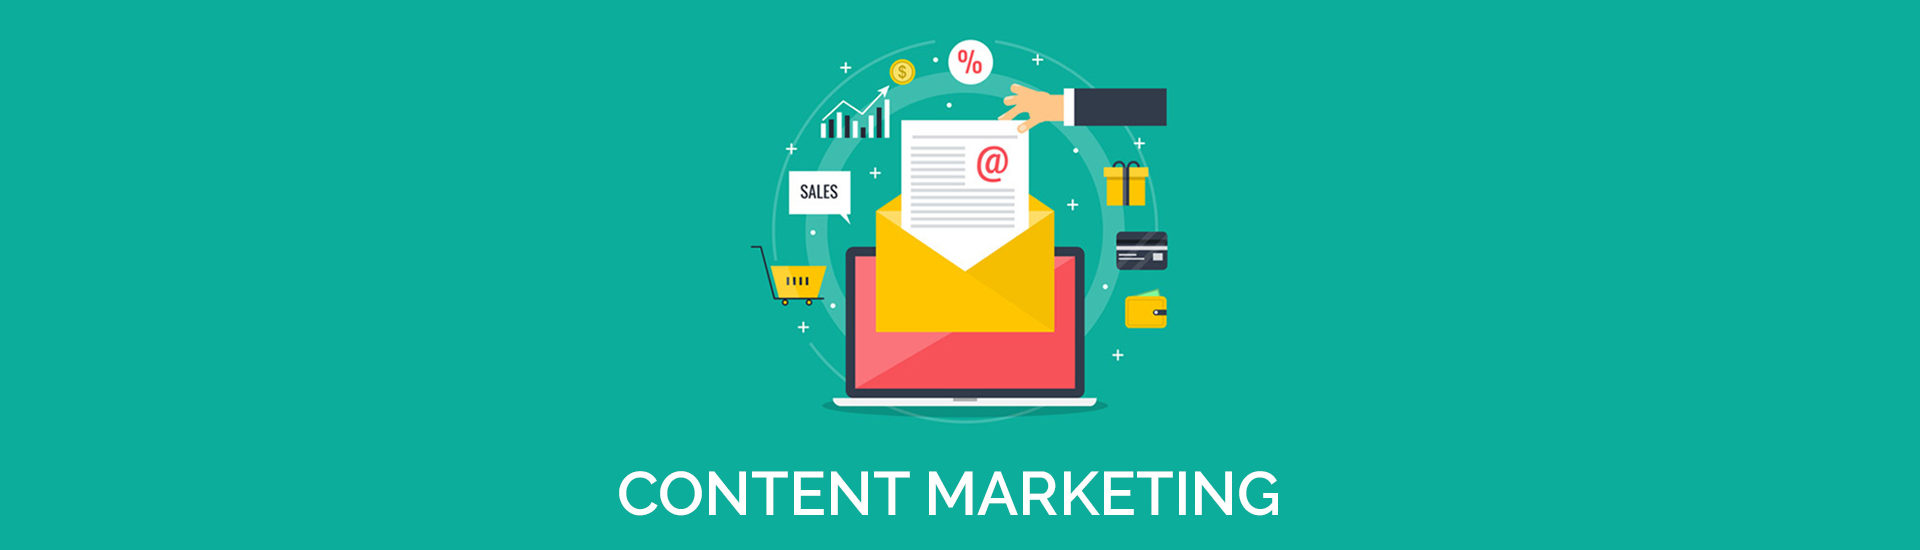 Financial content marketing